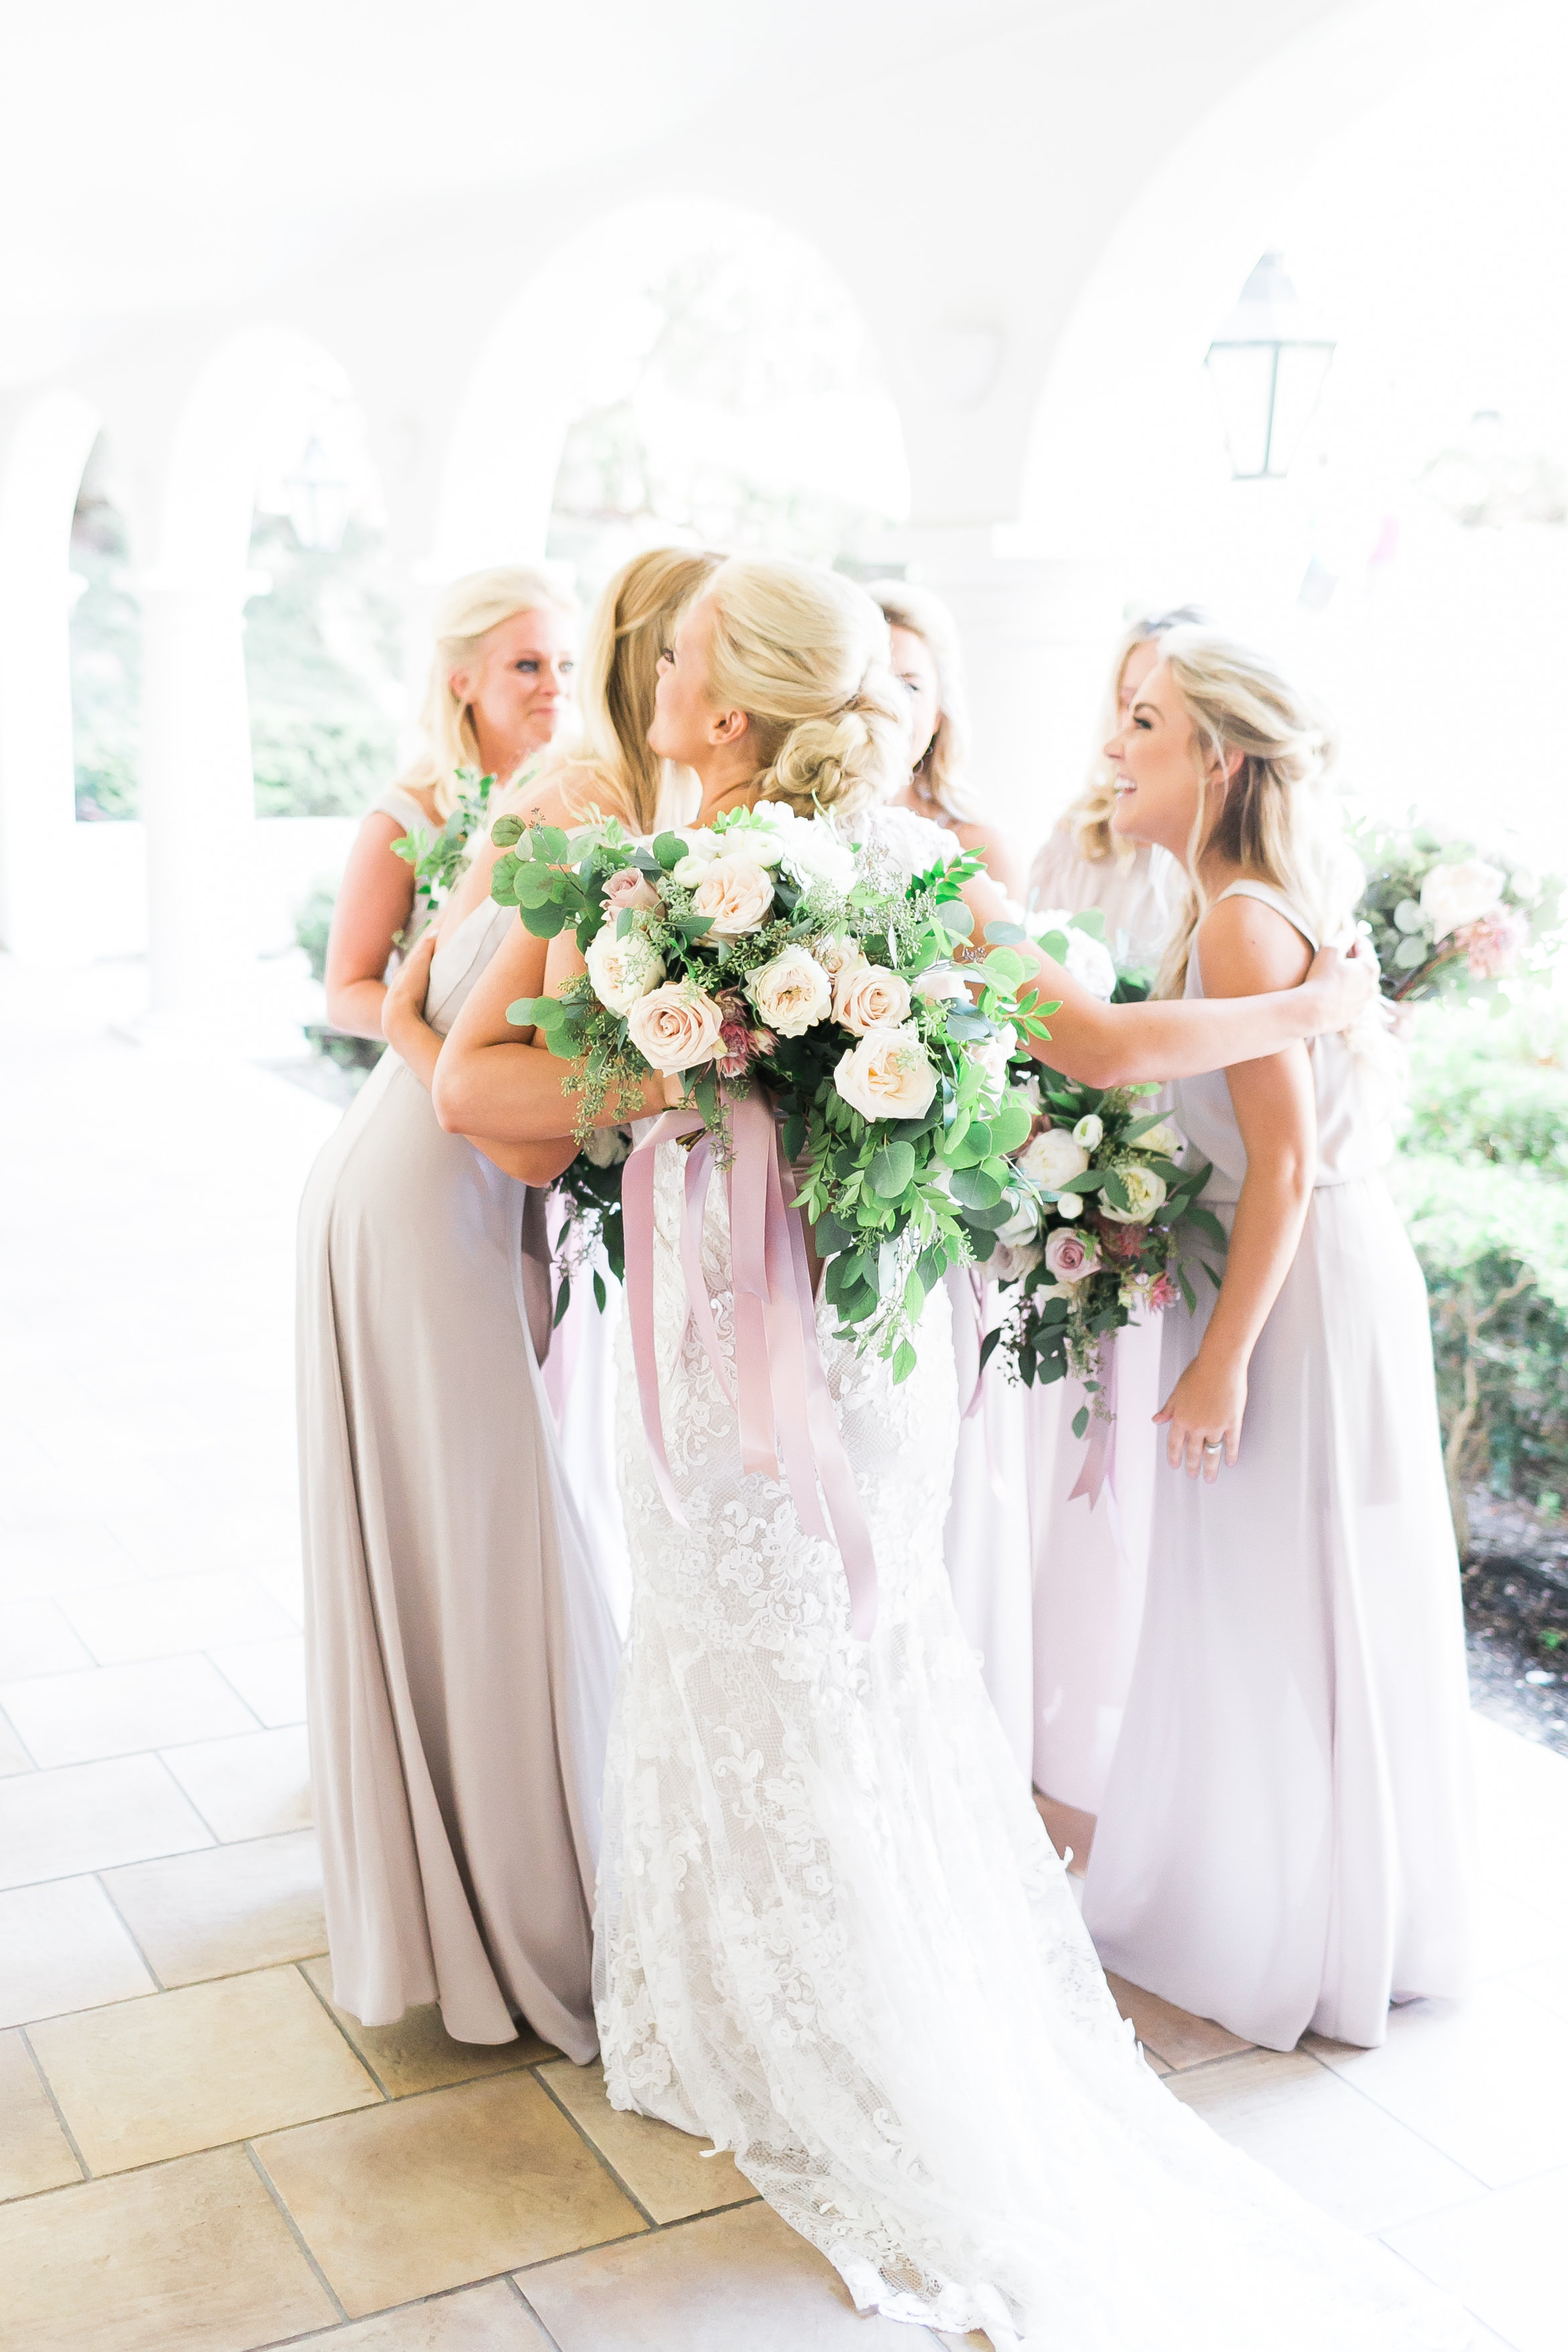 Bridesmaid first look.   CREDITS:  Destination Wedding Planner  ANDREA EPPOLITO EVENTS  · Images by  J.ANNE P  HOTOGRAPHY  · Video  HOO FILMS  · Venue Ritz Carlton Bacara Santa Barbara ·Gown  MONIQUE LHULLIER ·Bridesmaids Dresses  SHOW ME YOUR MUMU ·Stationery  SHE PAPERIE ·Bride's Shoes  BADGLEY MISCHKA ·Hair and Makeup  TEAM HAIR AND MAKEUP · Floral  BLUE MAGNOLIA ·Linen  LA TAVOLA ·Decor Rentals  TENT MERCHANT ·Calligraphy  EBB ·Lighting  FIVE STAR AV ·Ice Cream Station  MCCONNELL'S ICE CREAM